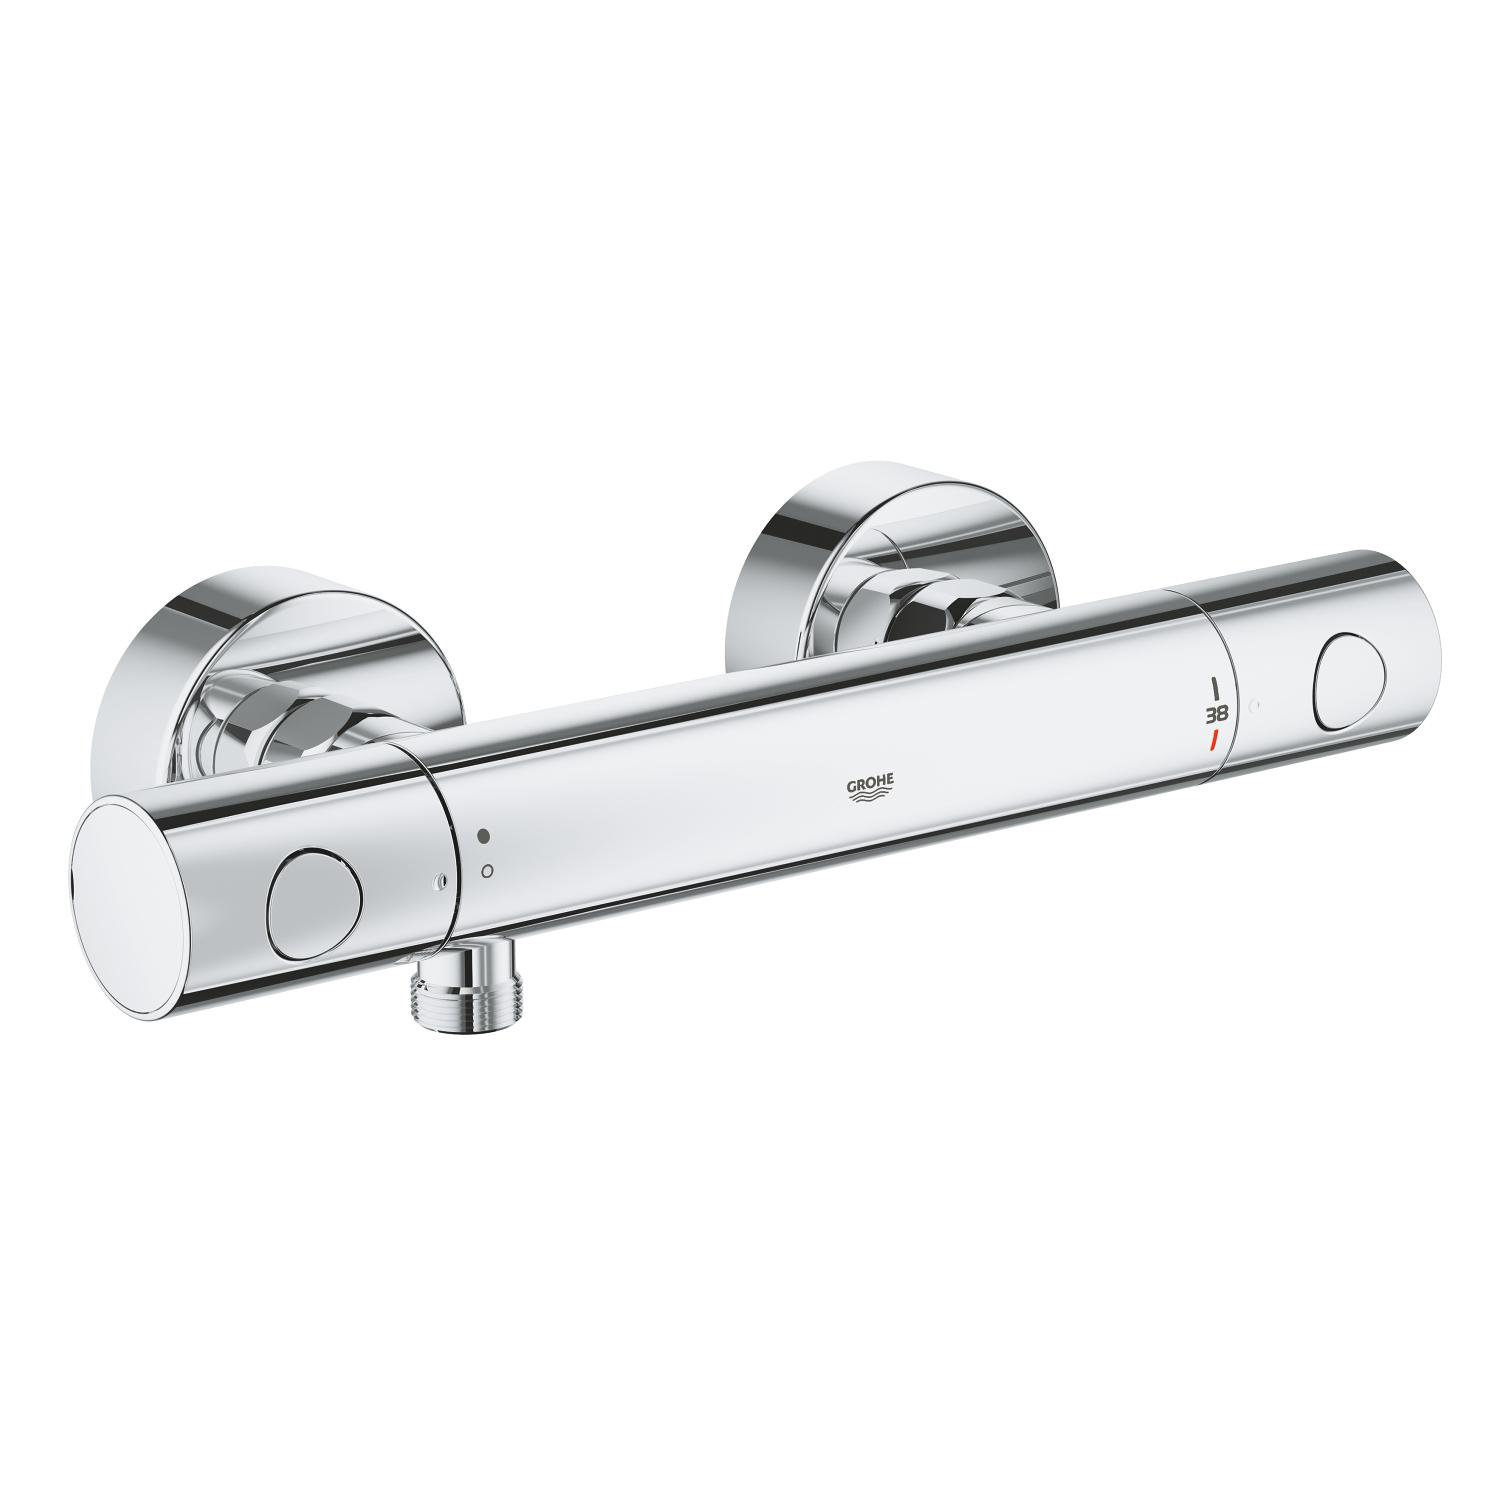 Douchethermostaat Grohtherm 800 Cosmo. 150mm m. s-kopp. Grohe